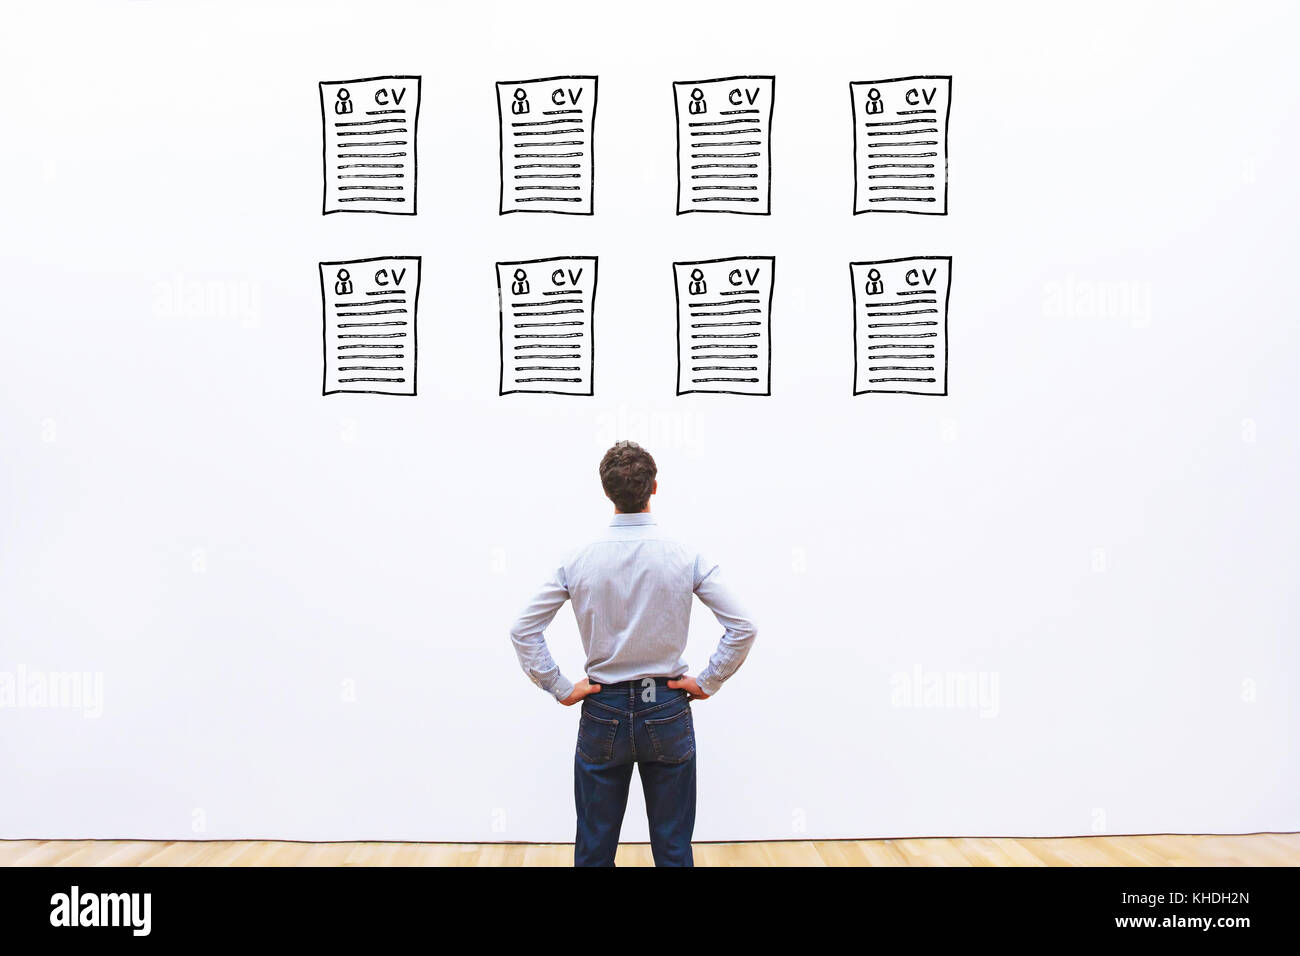 human resource manager looking at many different cv resume and choosing perfect person to hire - Stock Image